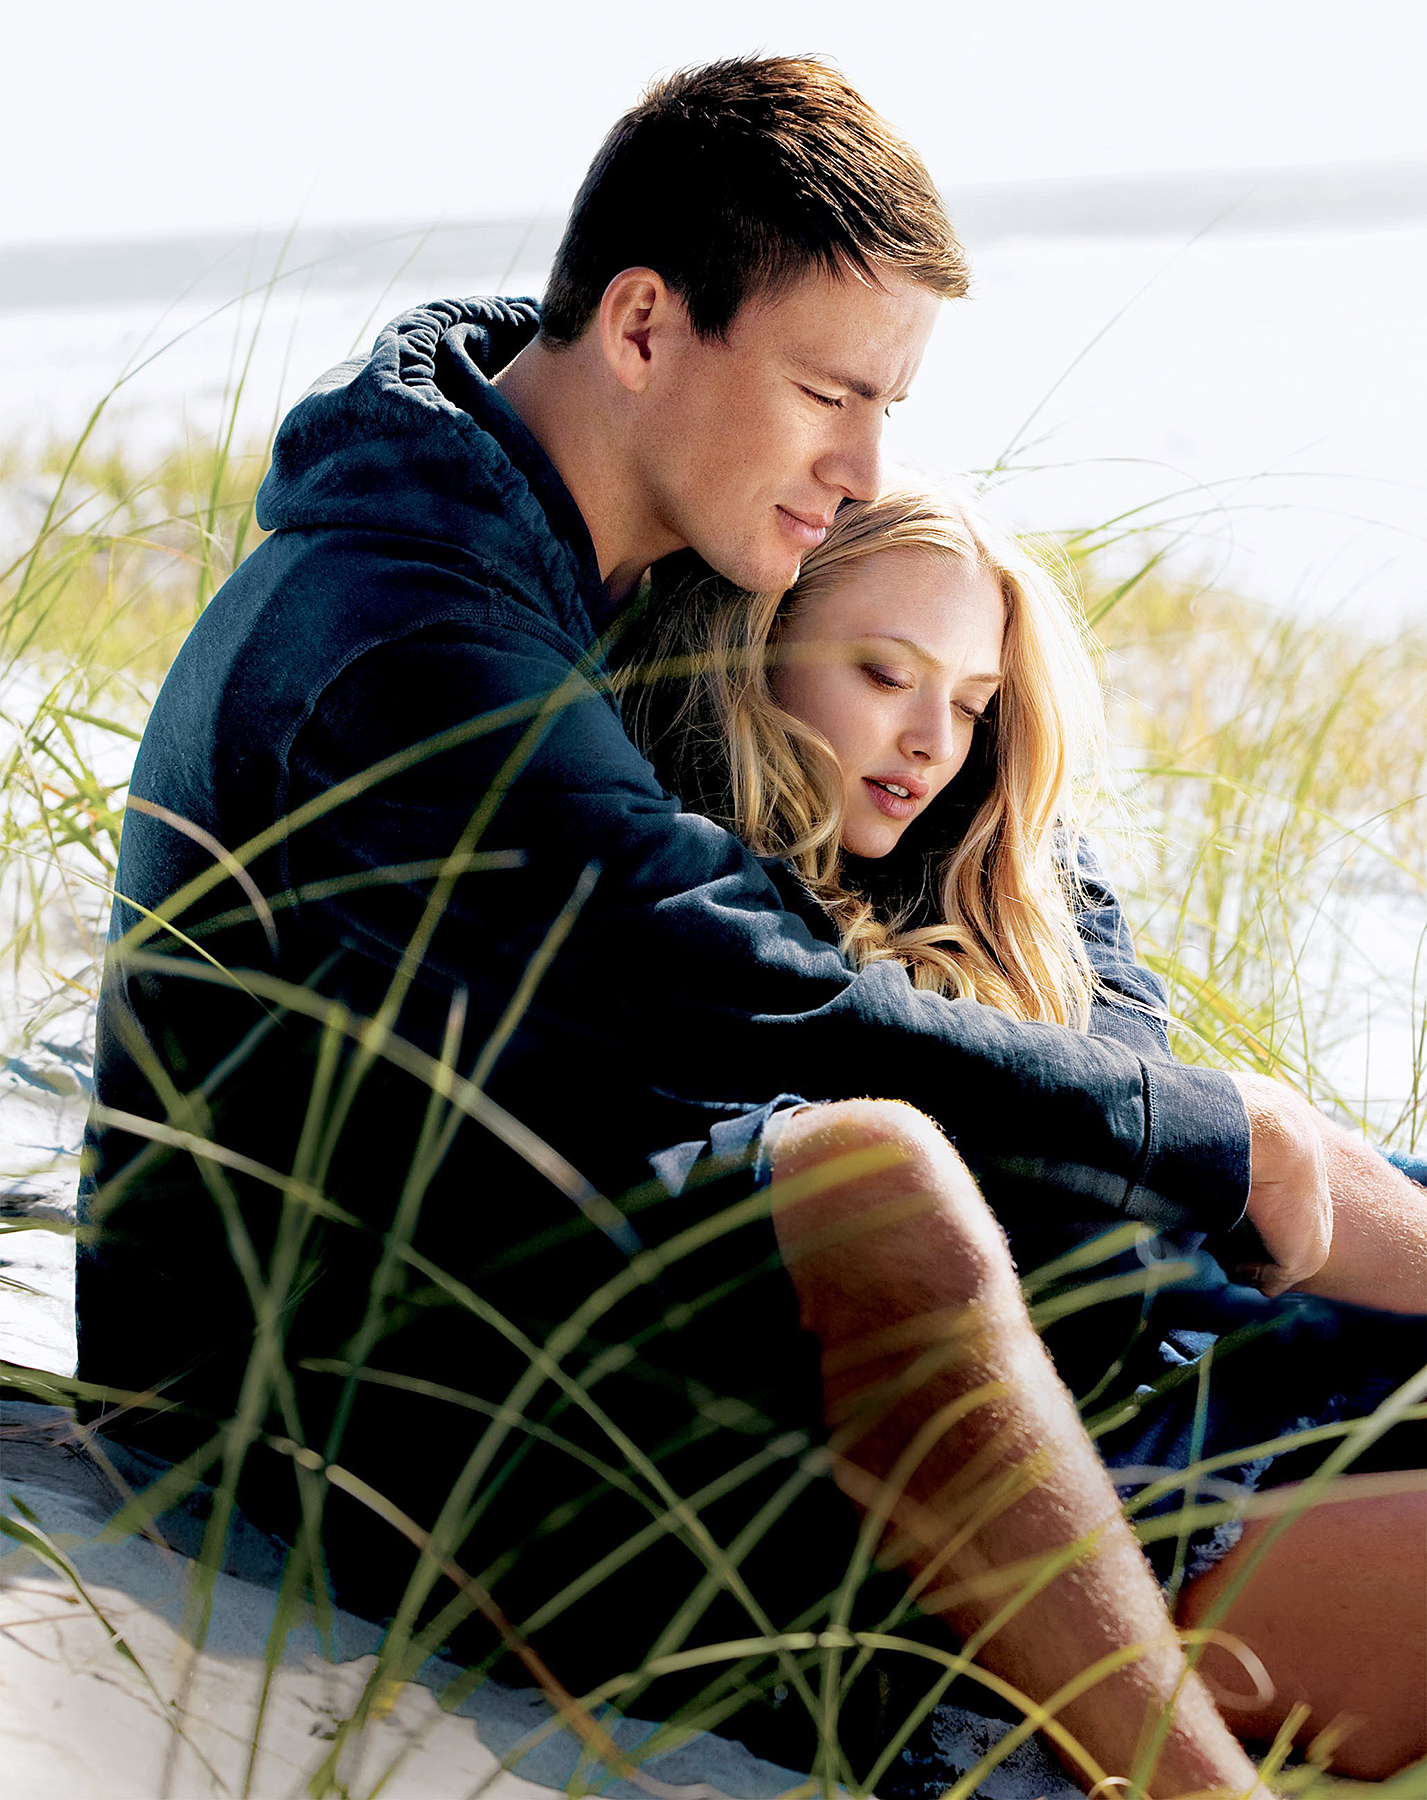 Channing Tatum Amanda Seyfried Dear John